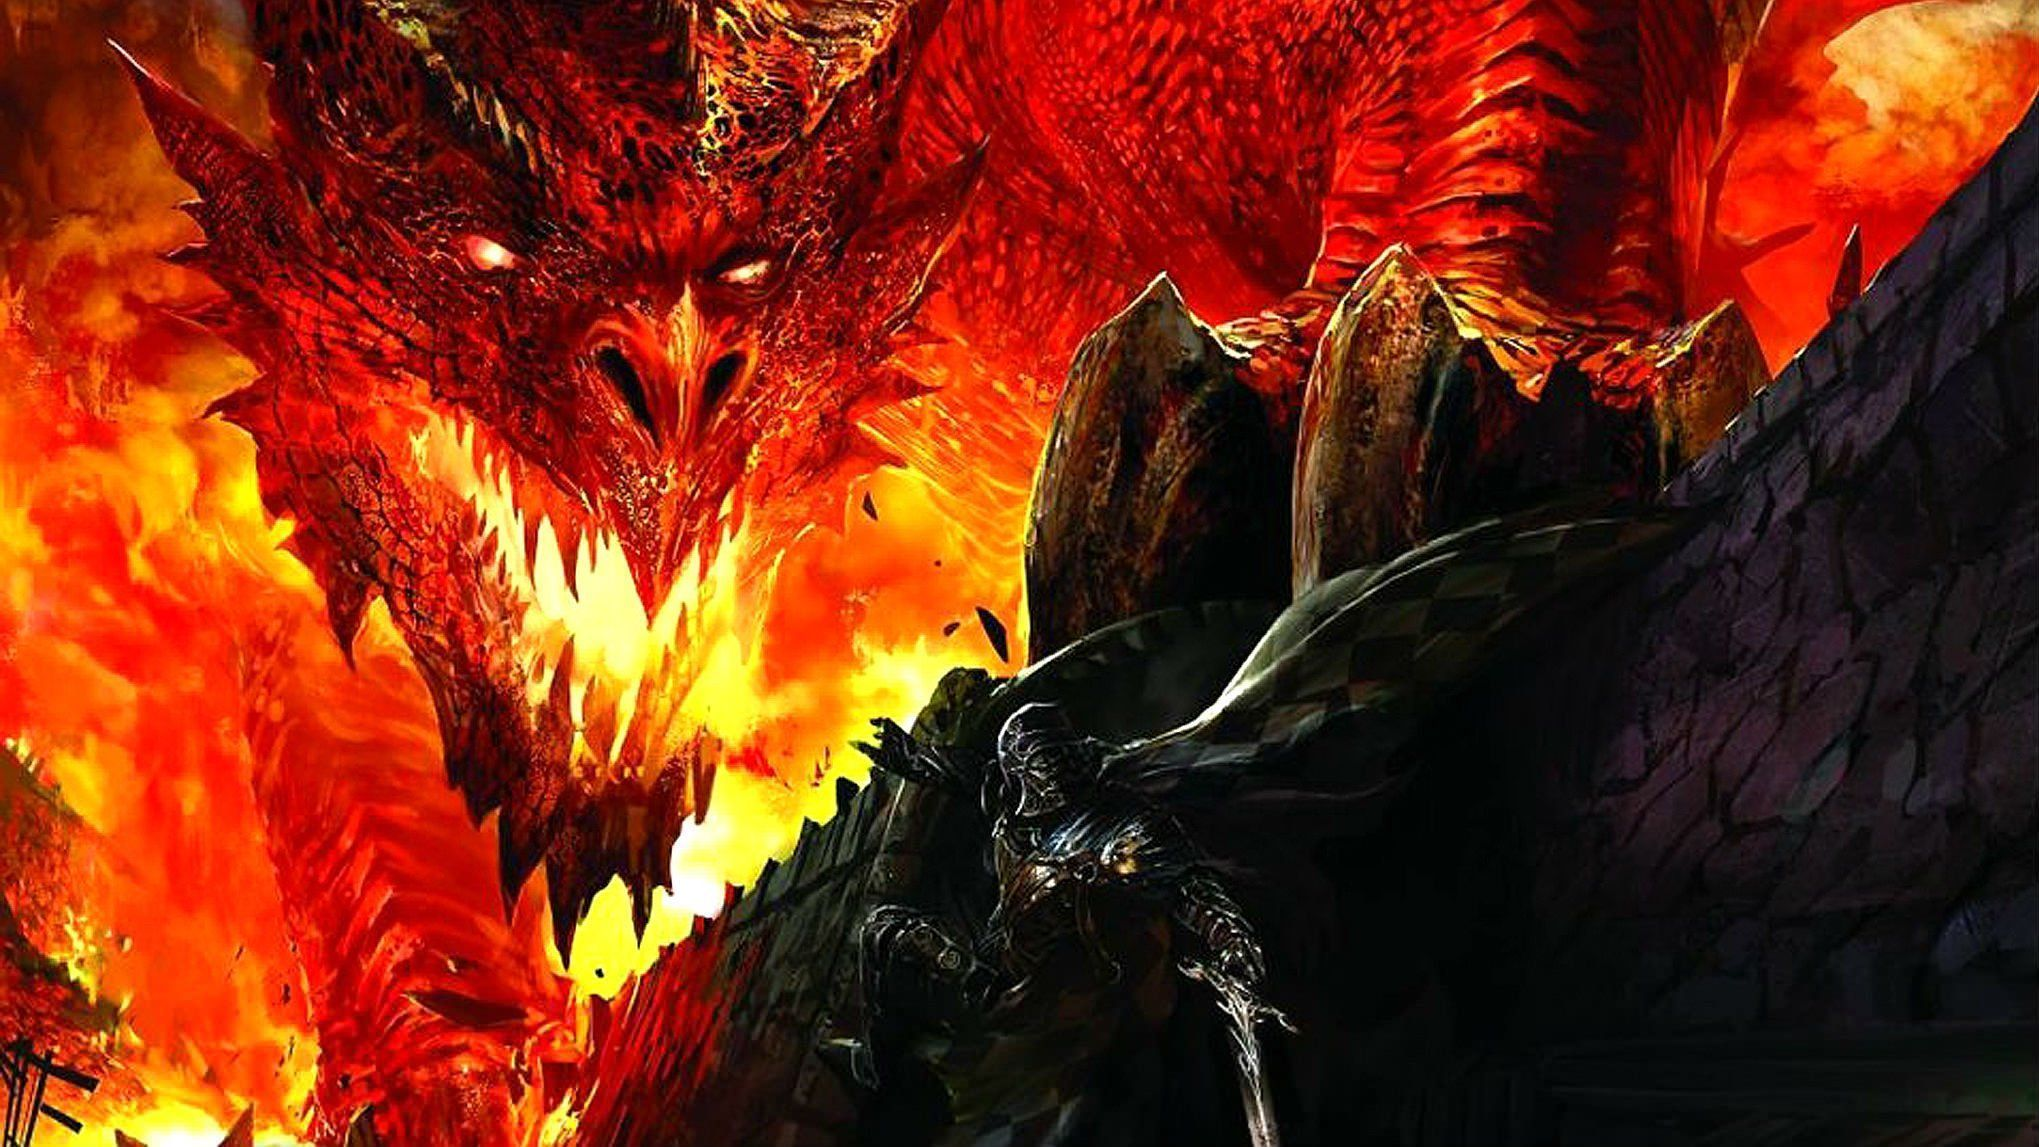 Fhdq Dungeons And Dragons Top Dungeons And Dragons Wallpapers